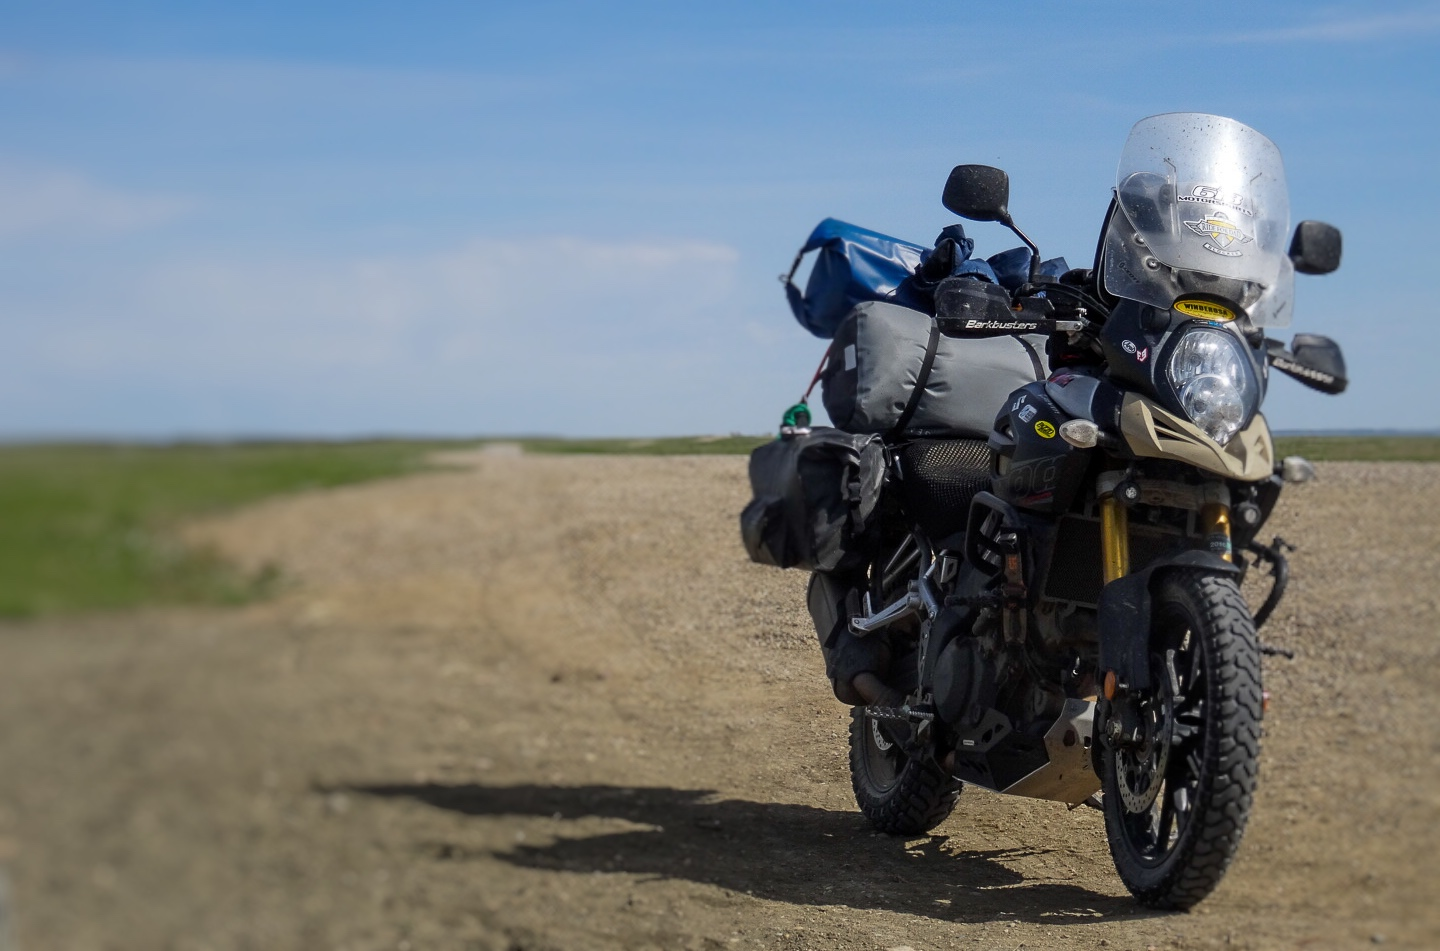 Suzuki Vstrom 1000 on the Canadian Prairies